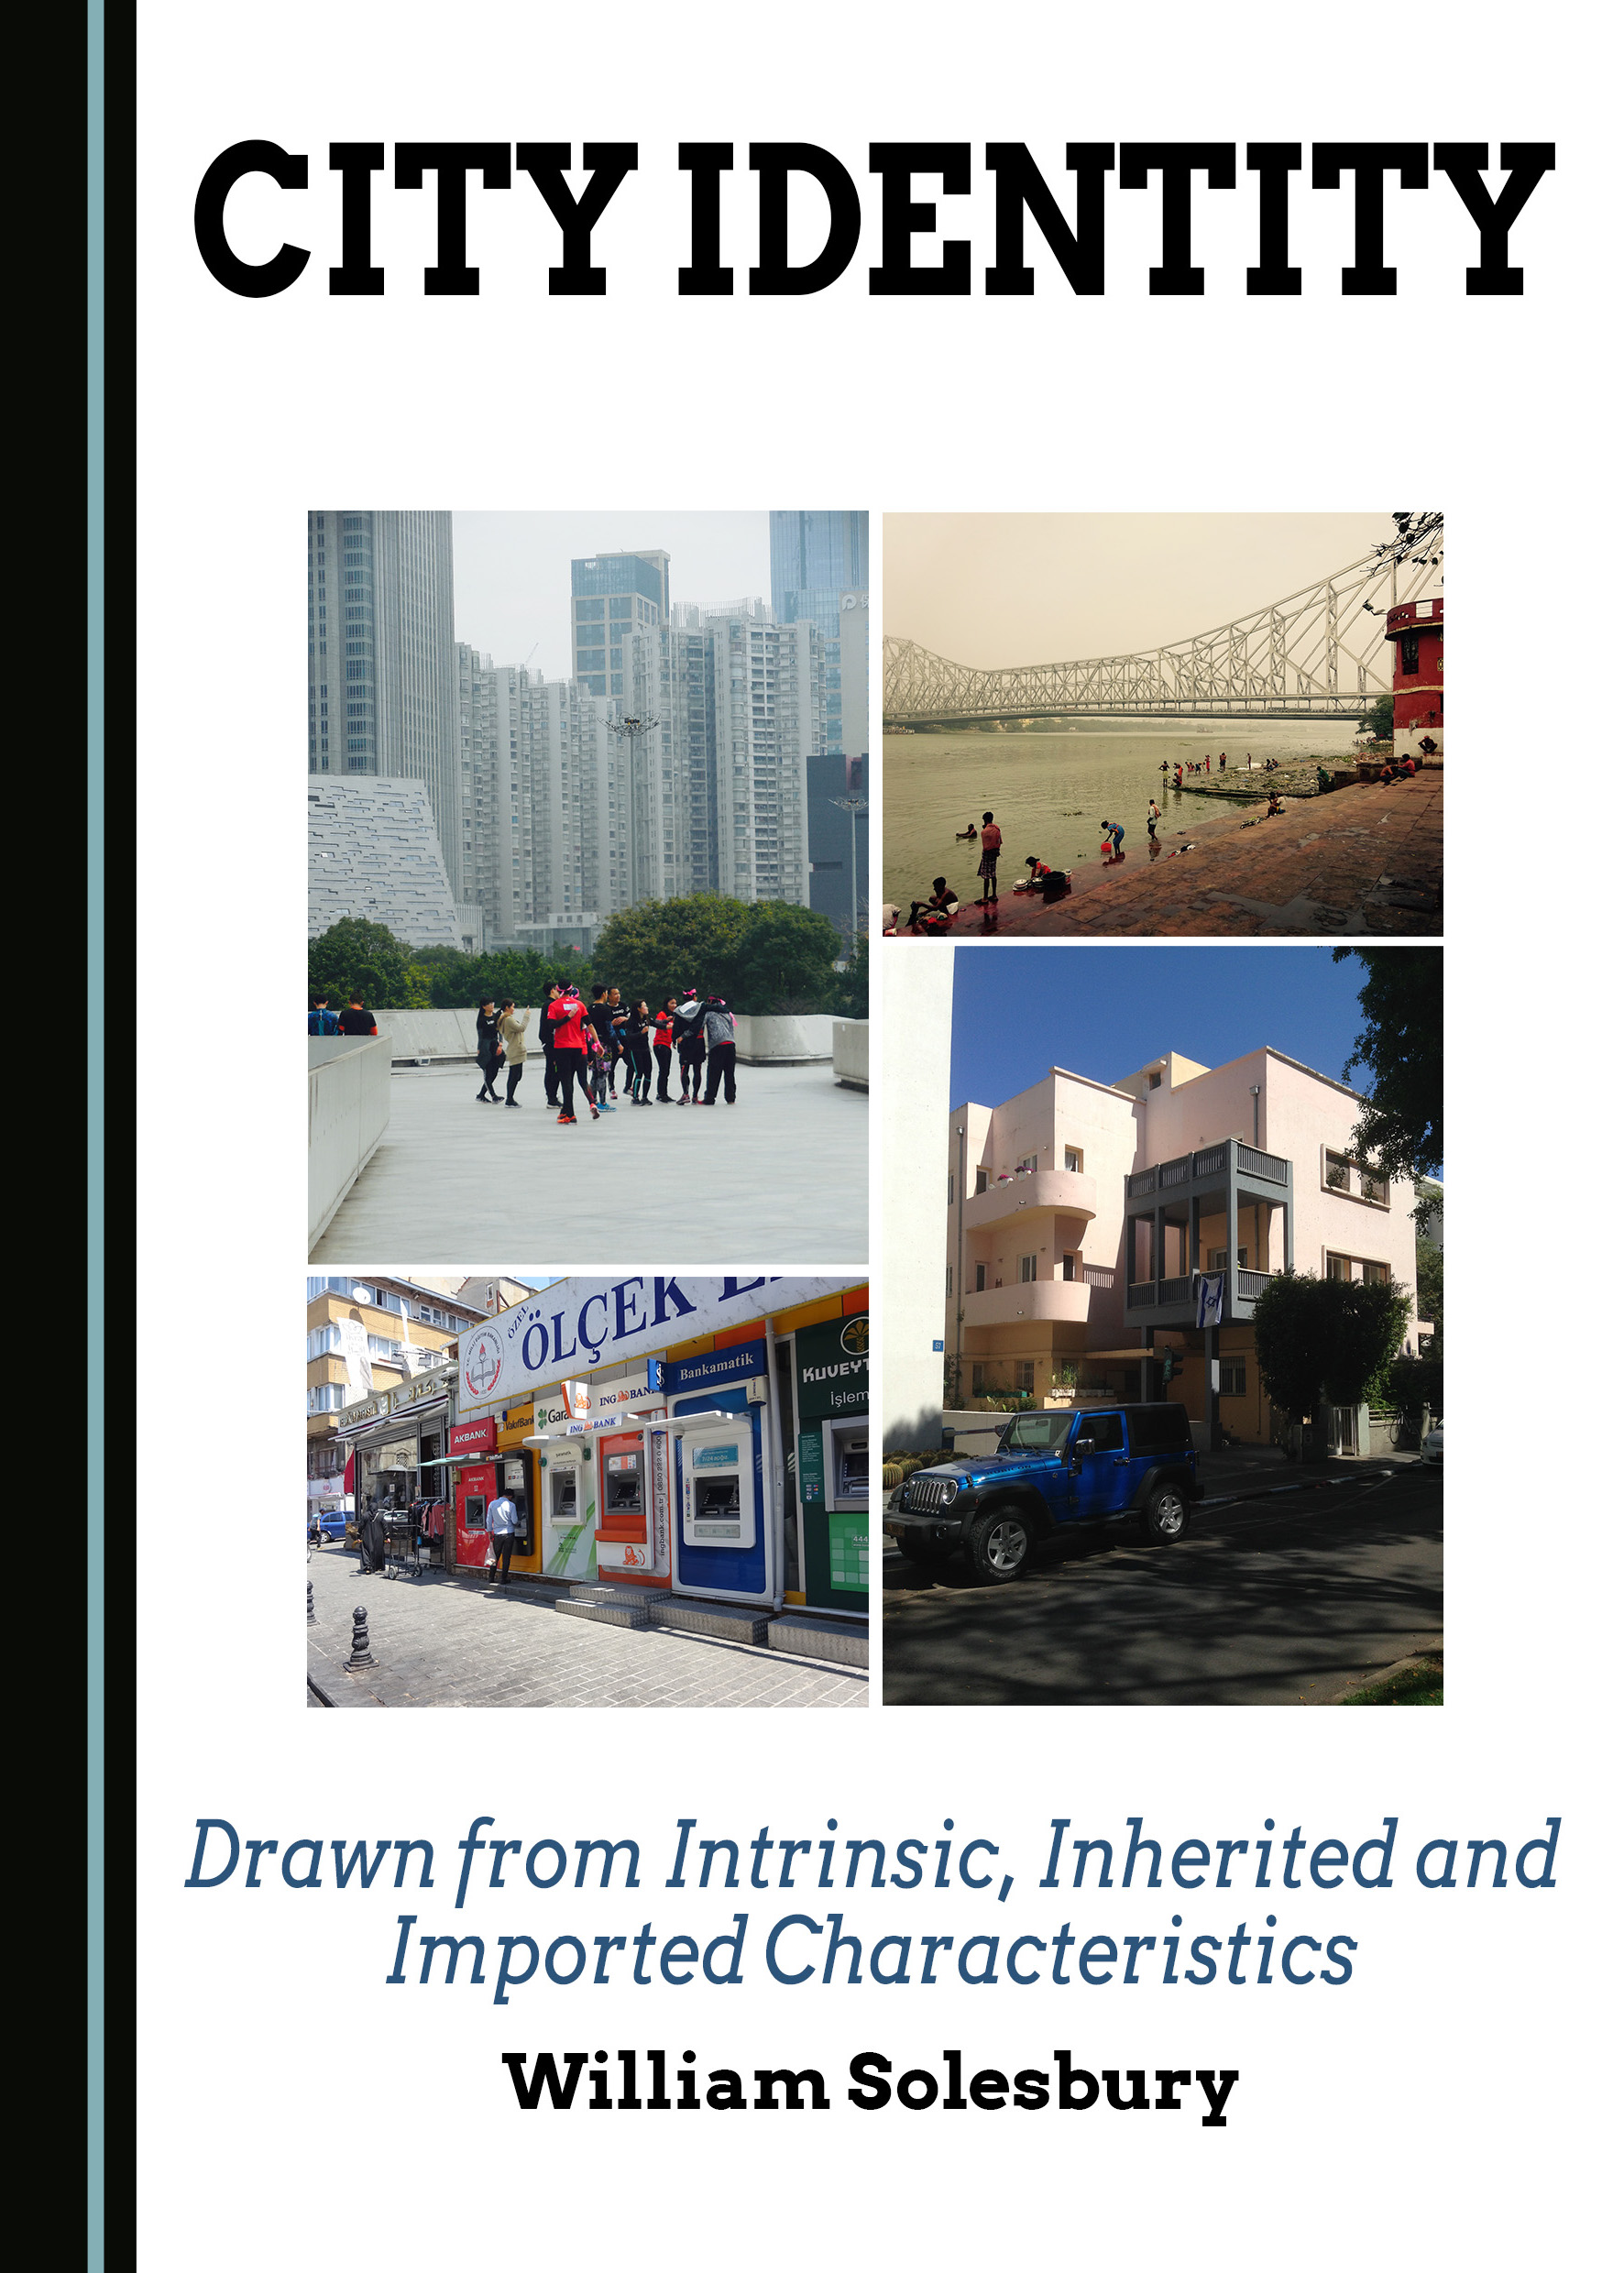 City Identity: Drawn from Intrinsic, Inherited and Imported Characteristics